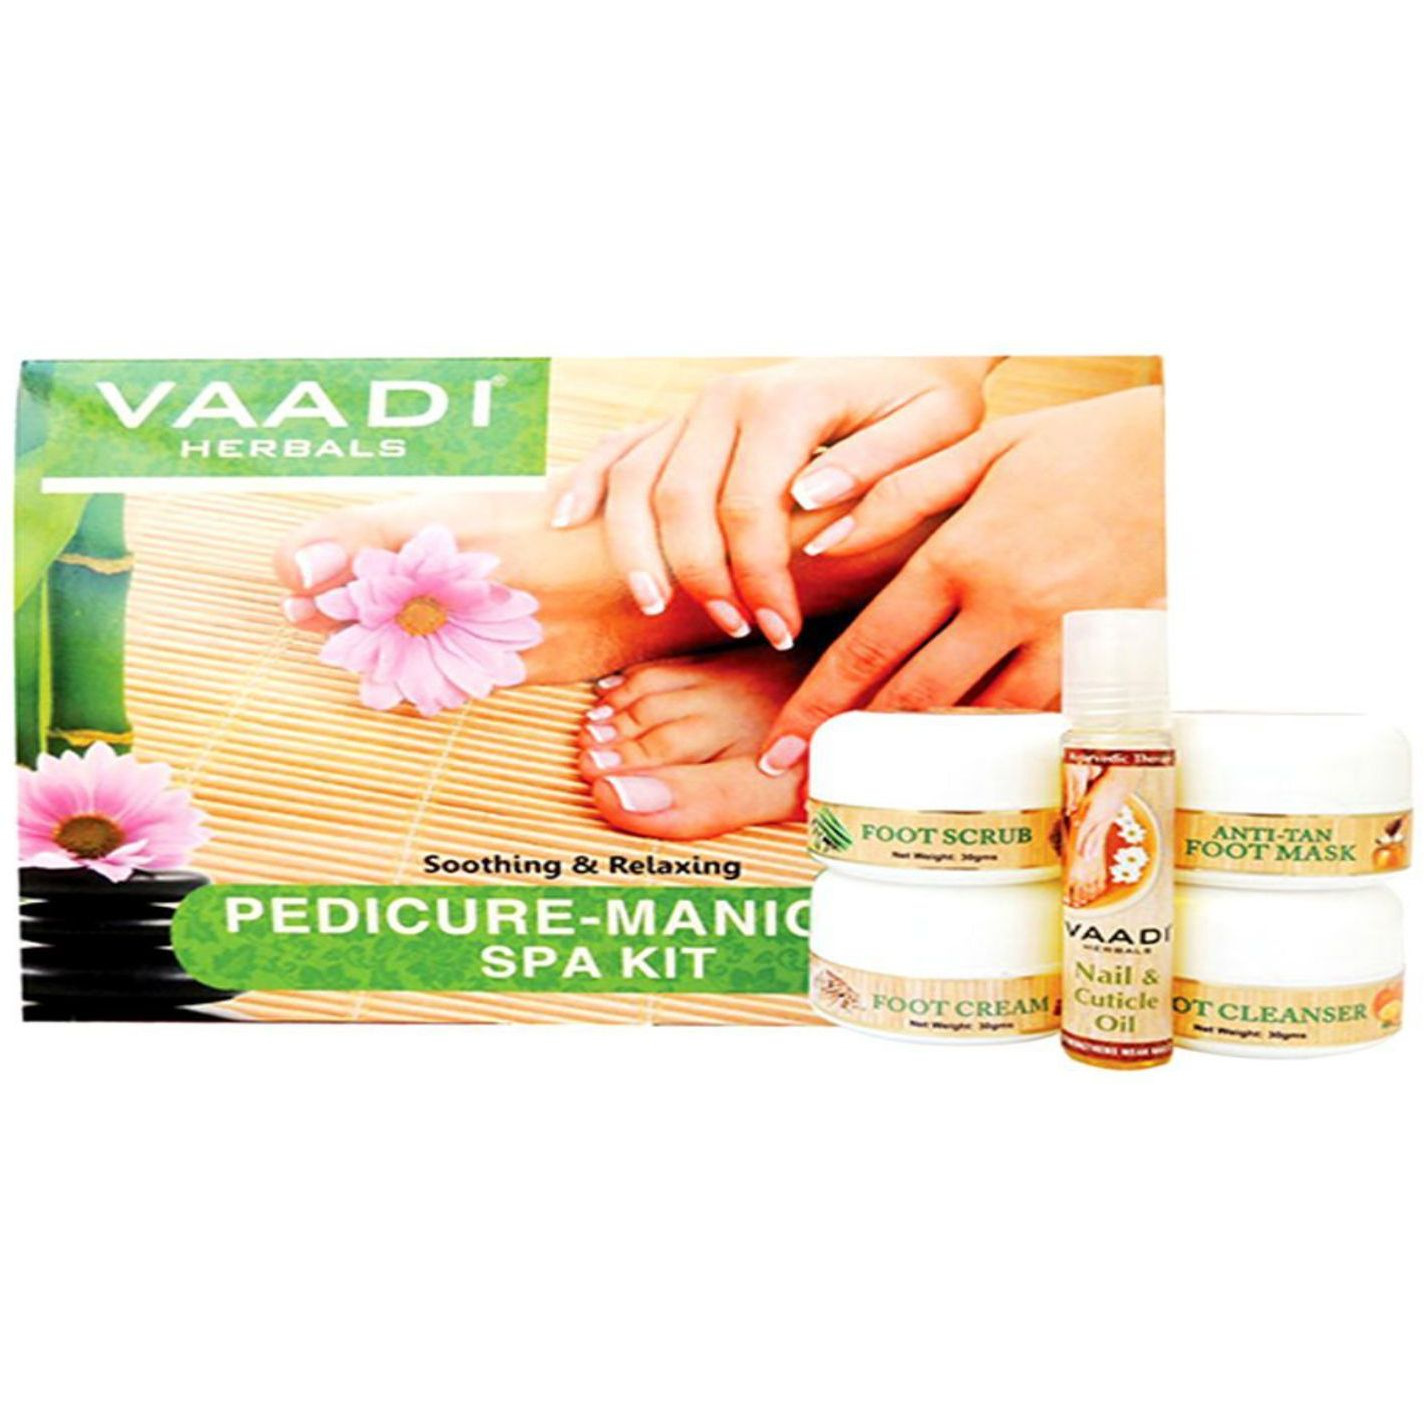 Vaadi Herbals Pedicure Manicure kit with nail & Cuticle Oil-135 Gms (Size:PACK OF 04)